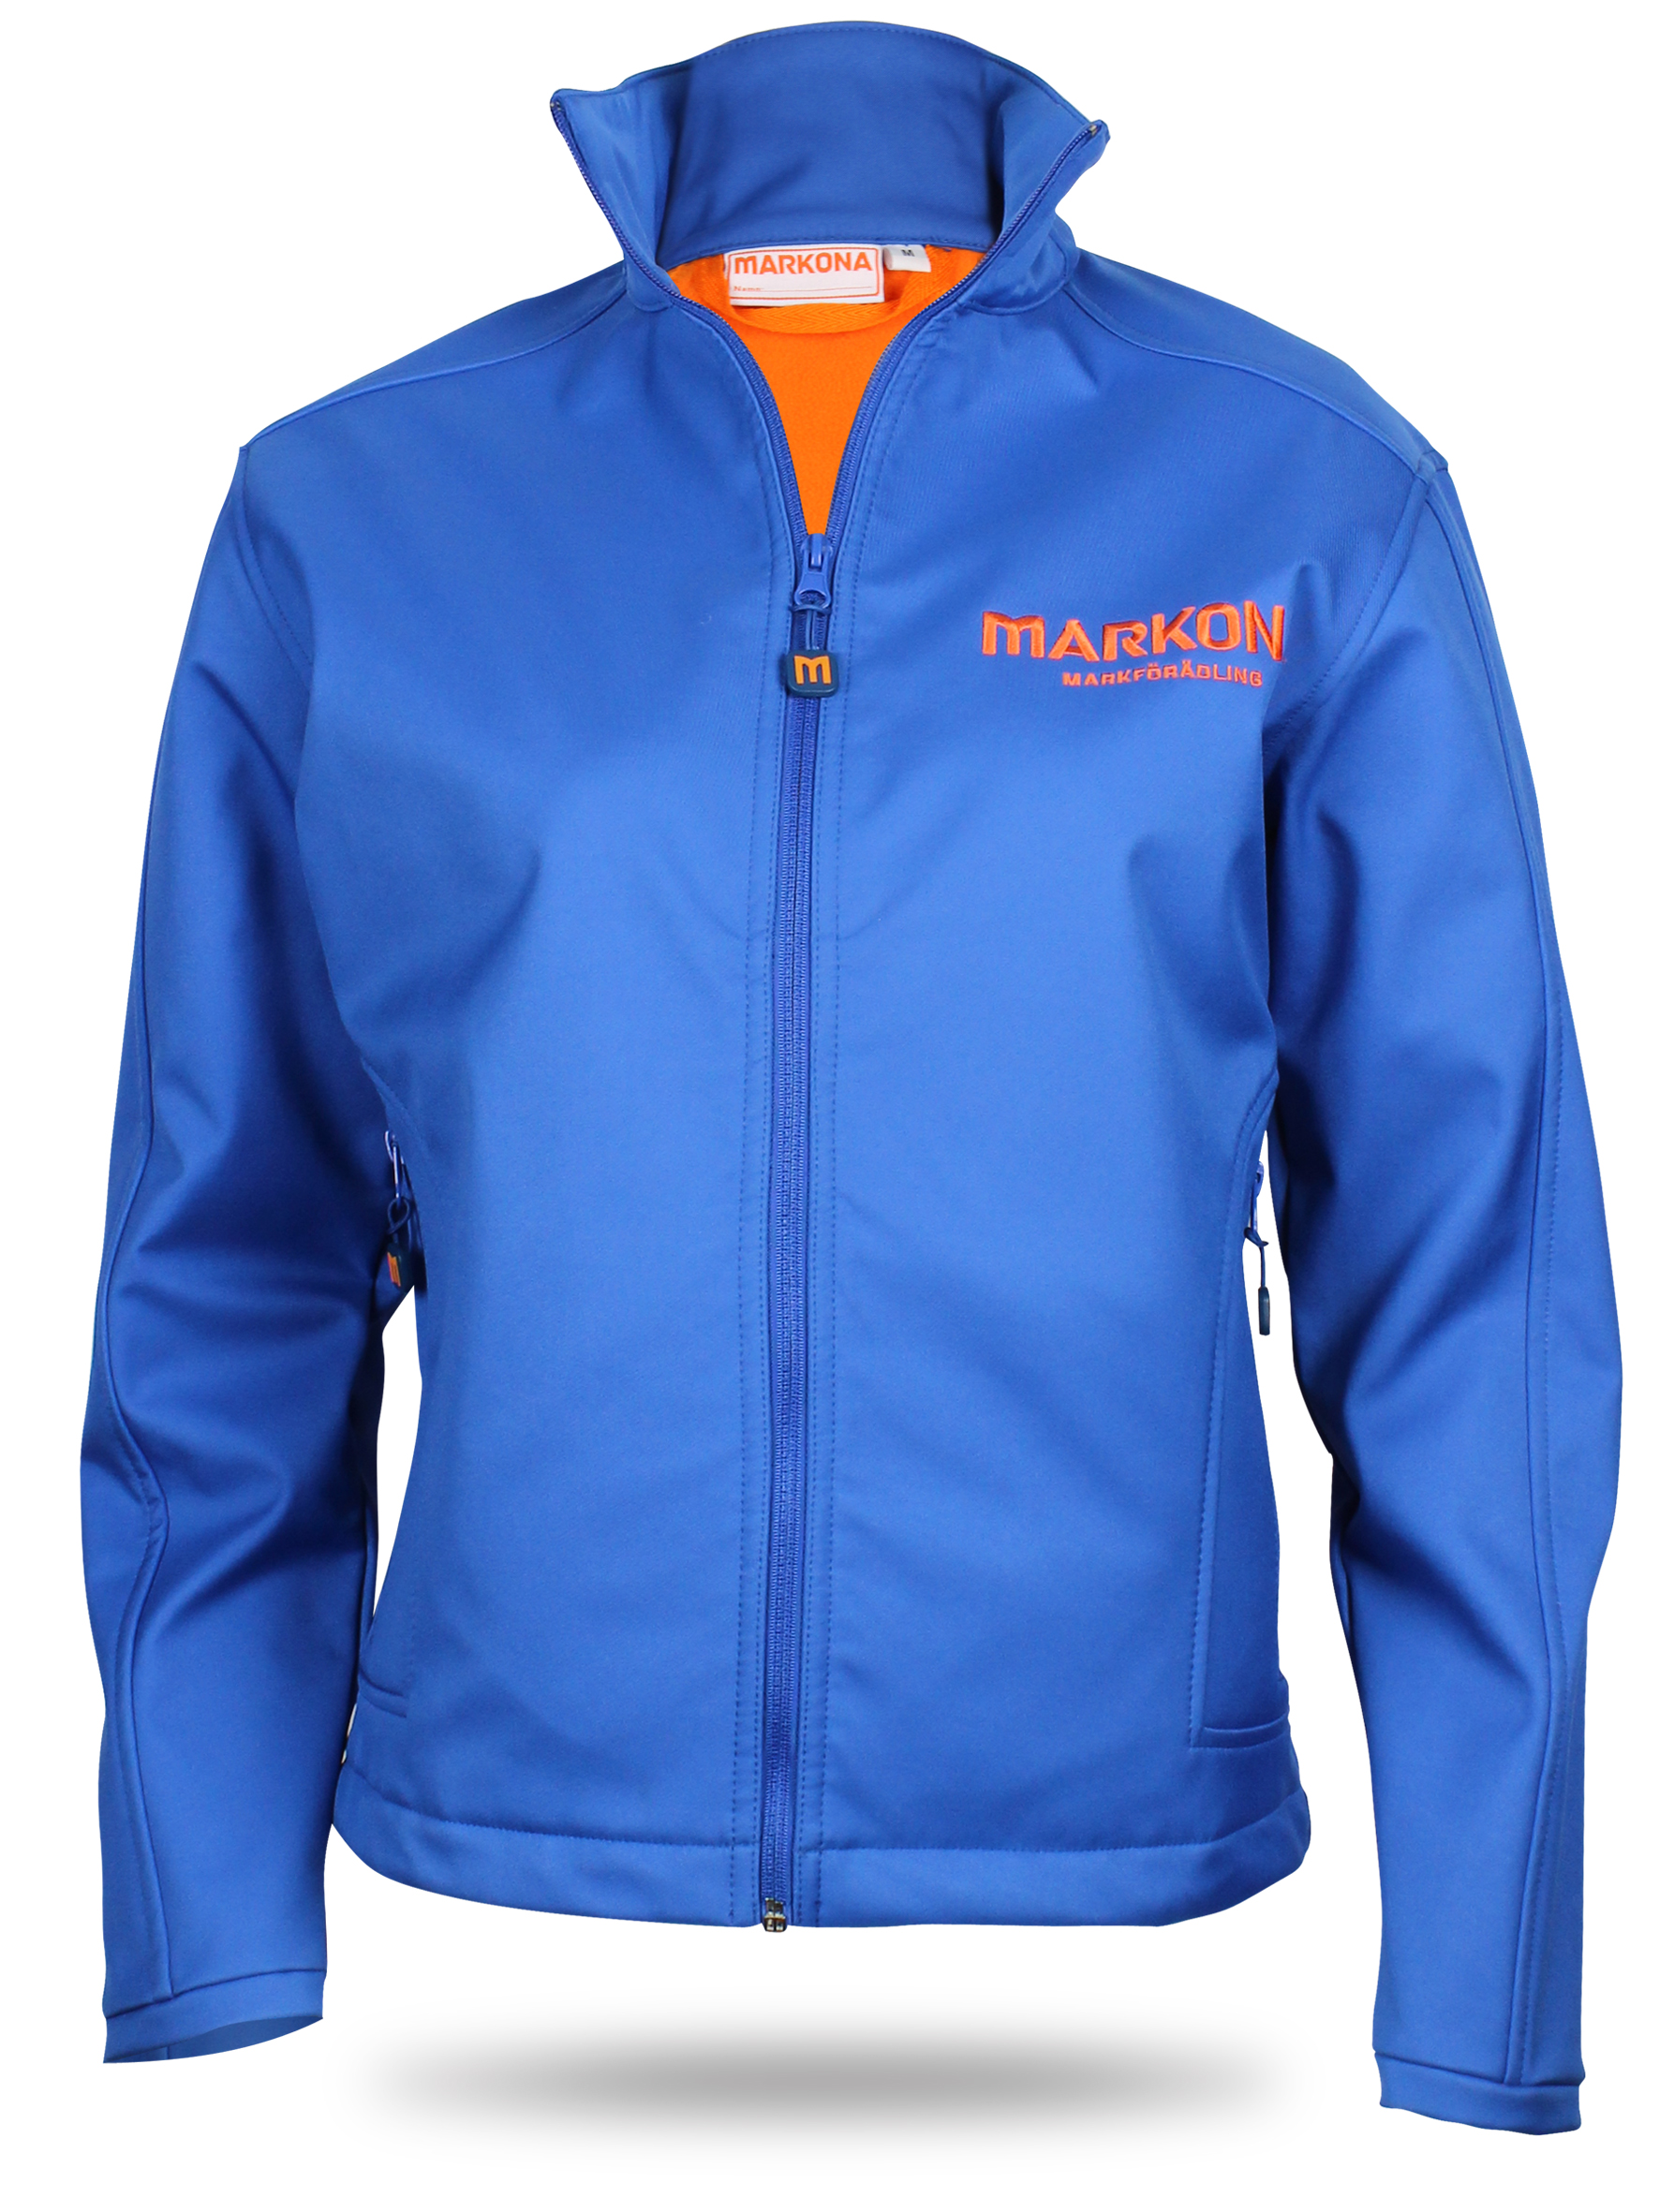 This is the markona jacket with logo for their workers